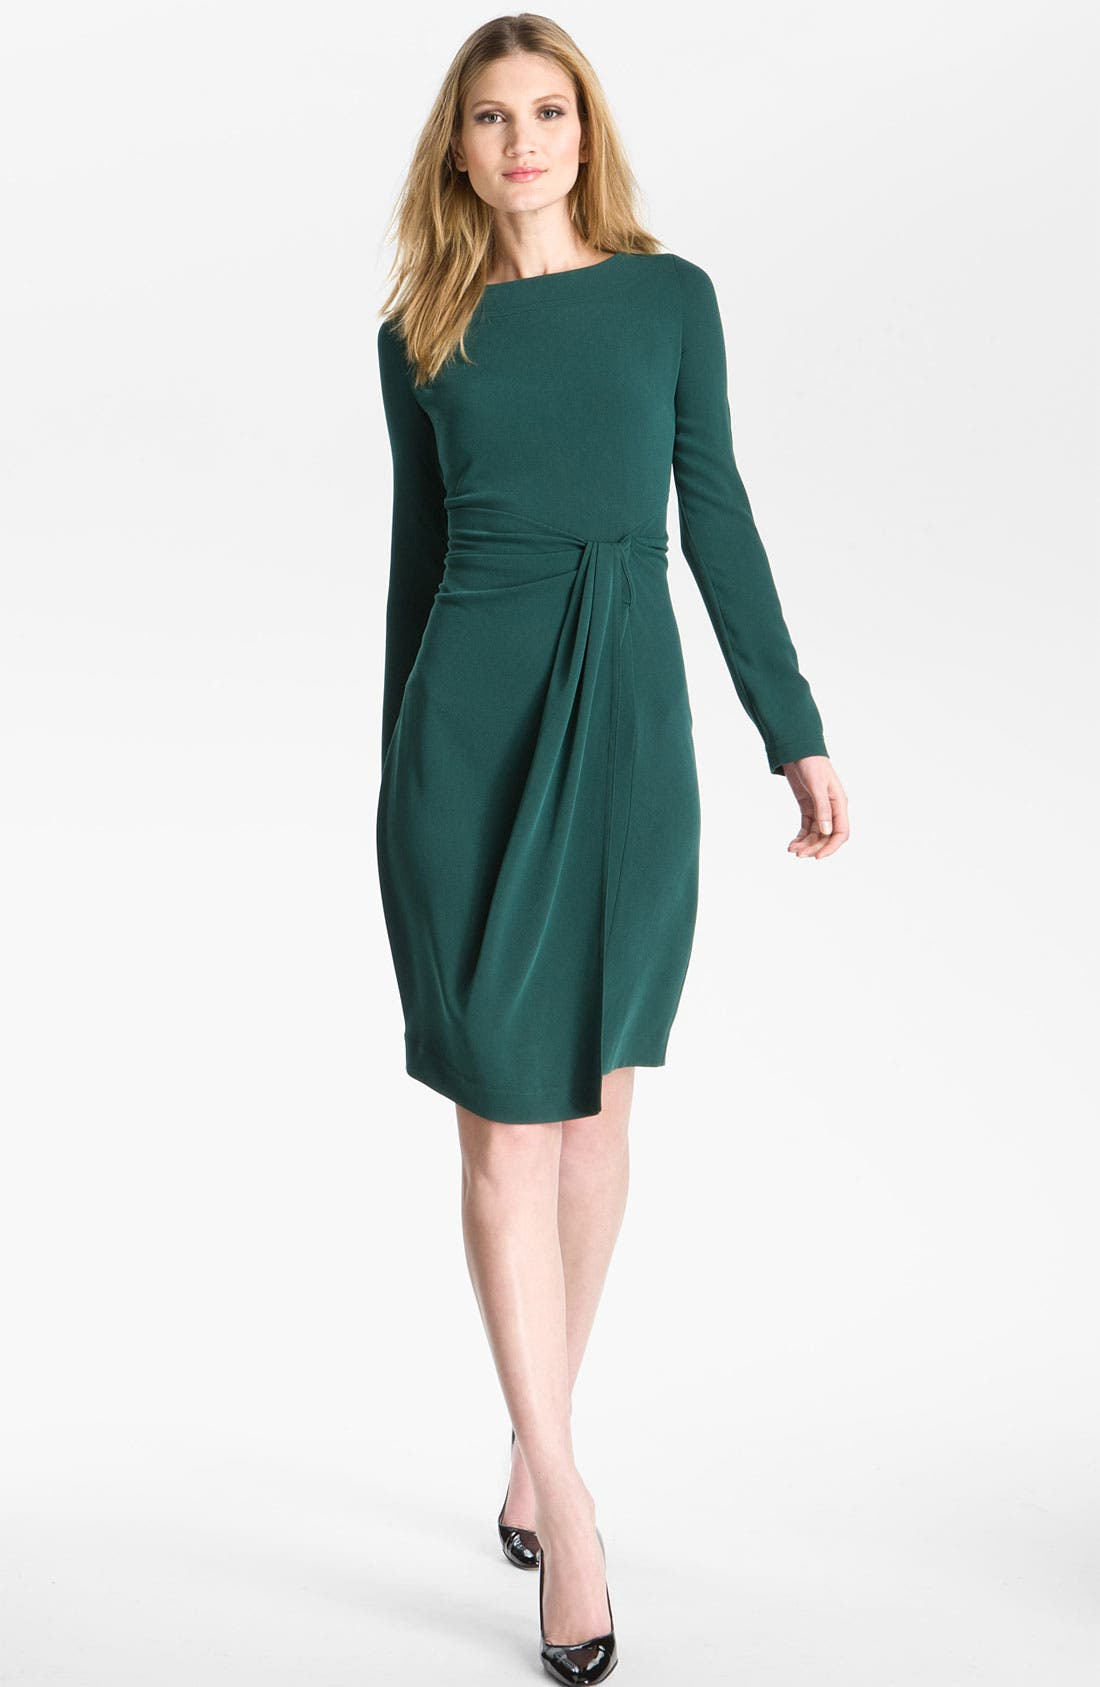 Alternate Image 1 Selected - St. John Collection 'Luxe Crepe' Faux Wrap Dress